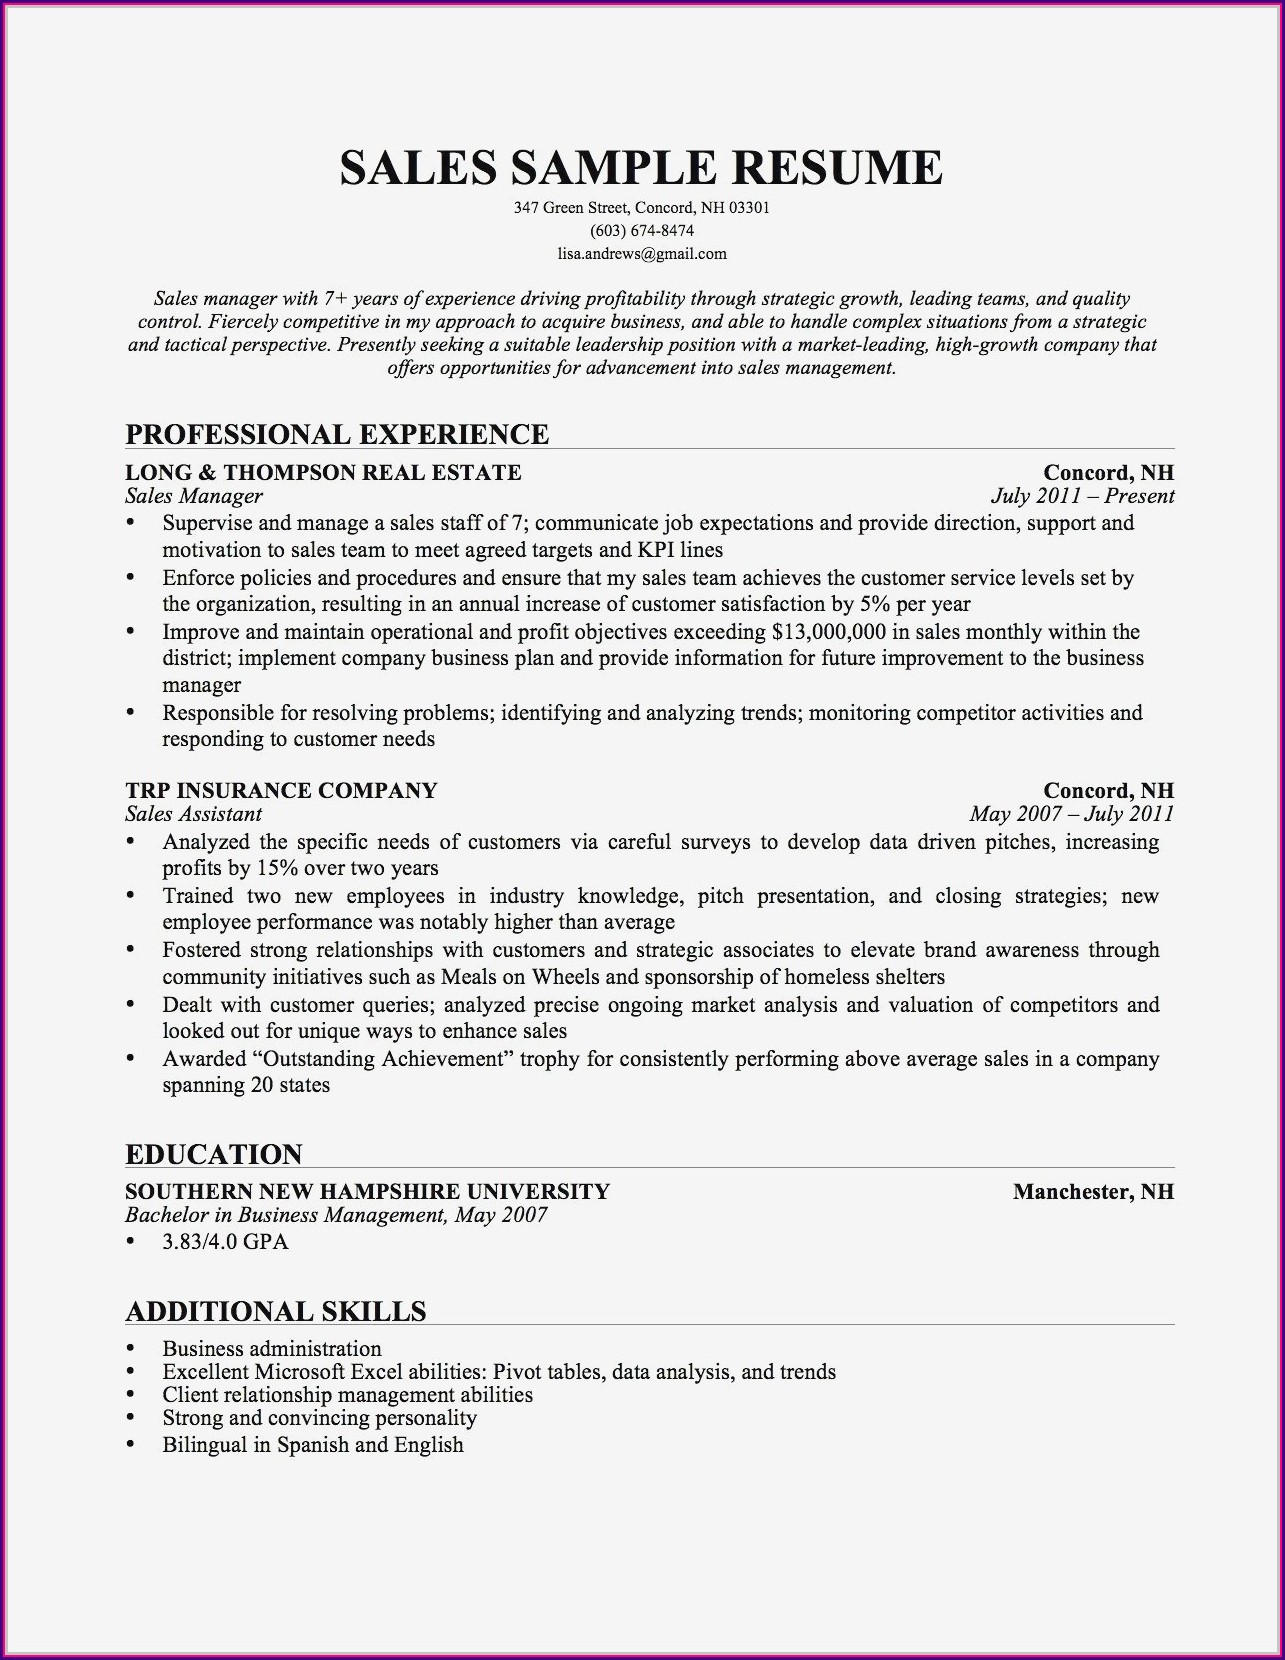 Sample Resume For Healthcare Administrative Assistant